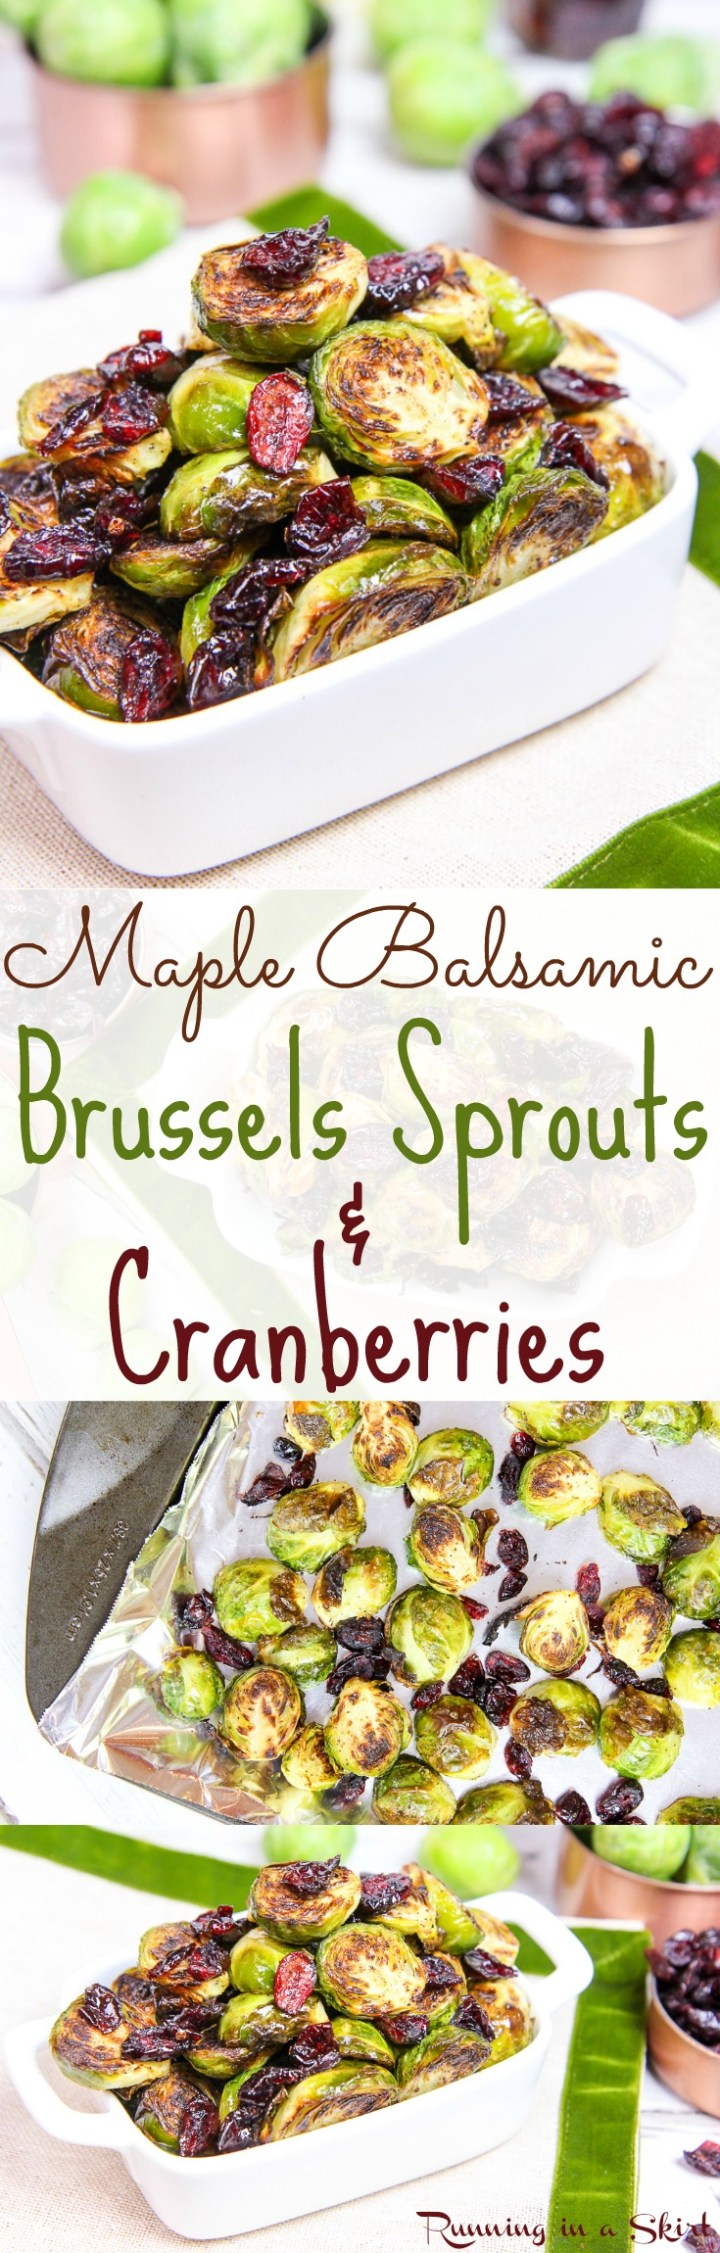 Maple Balsamic Brussels Sprouts and Cranberries recipe. Great for a healthy Thanksgiving side dish or Christmas dinner but easy enough for a weekday dinner. The best crispy, oven roasted sprouts recipe with maple syrup! Vegan, vegetarian, gluten free. / Running in a Skirt via @juliewunder